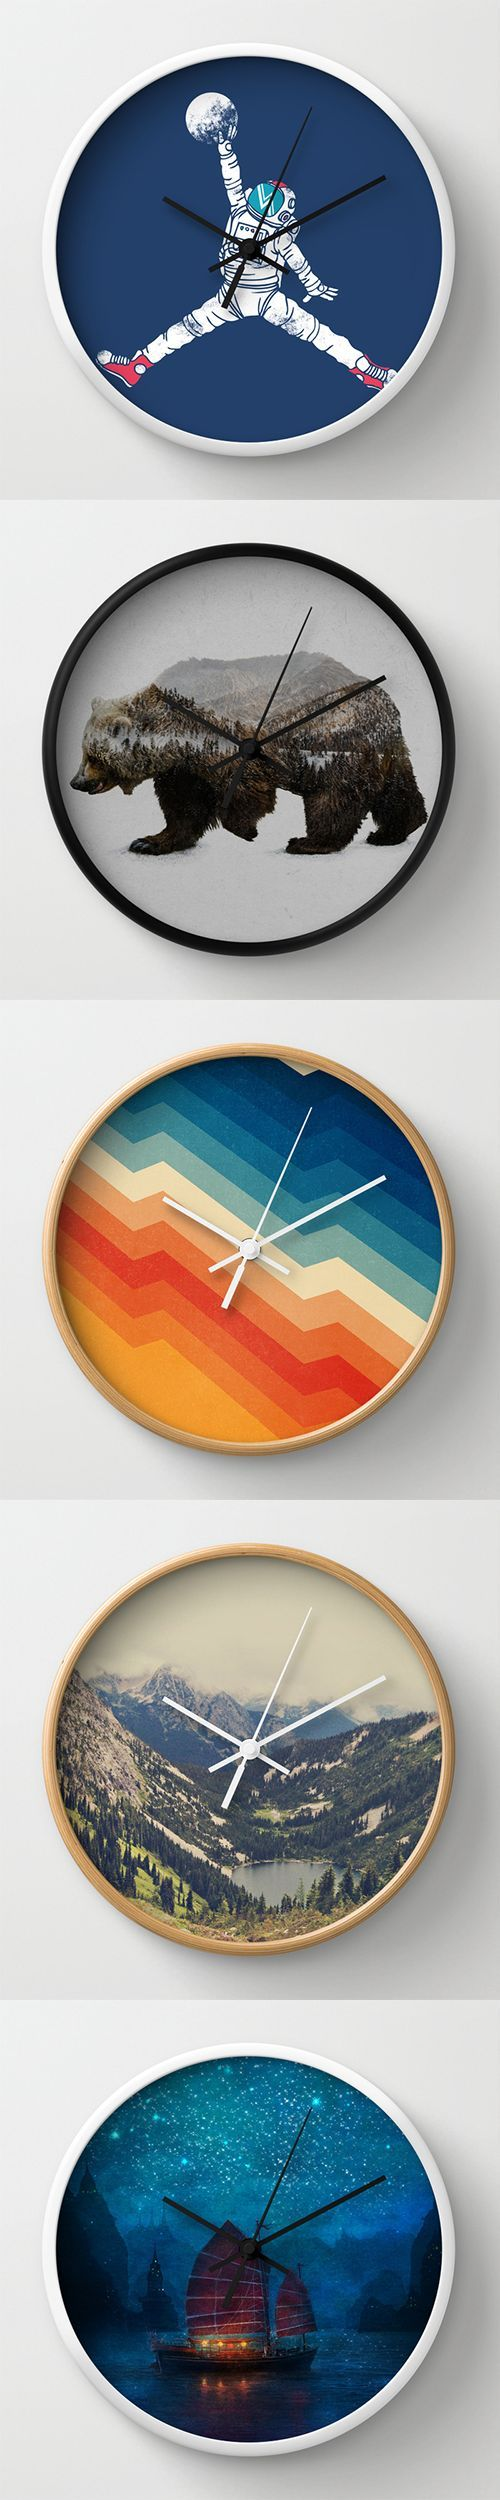 590 best clocks images on pinterest mirrors wood and frames wall clocks and millions of other products available atsociety6 today every purchase supports amipublicfo Images